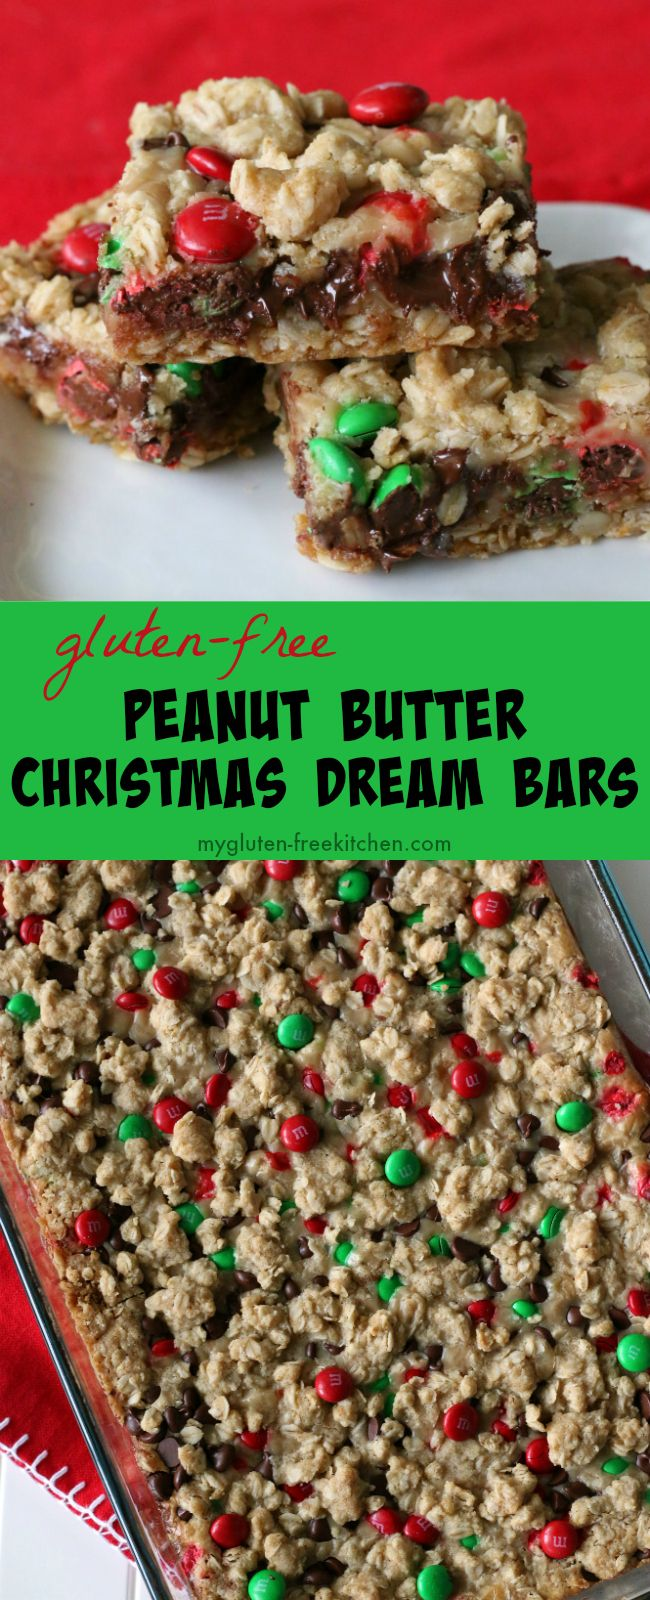 Gluten-free Peanut Butter Christmas Dream Bars recipe. Perfect for neighbor gifts and Santa's plate!